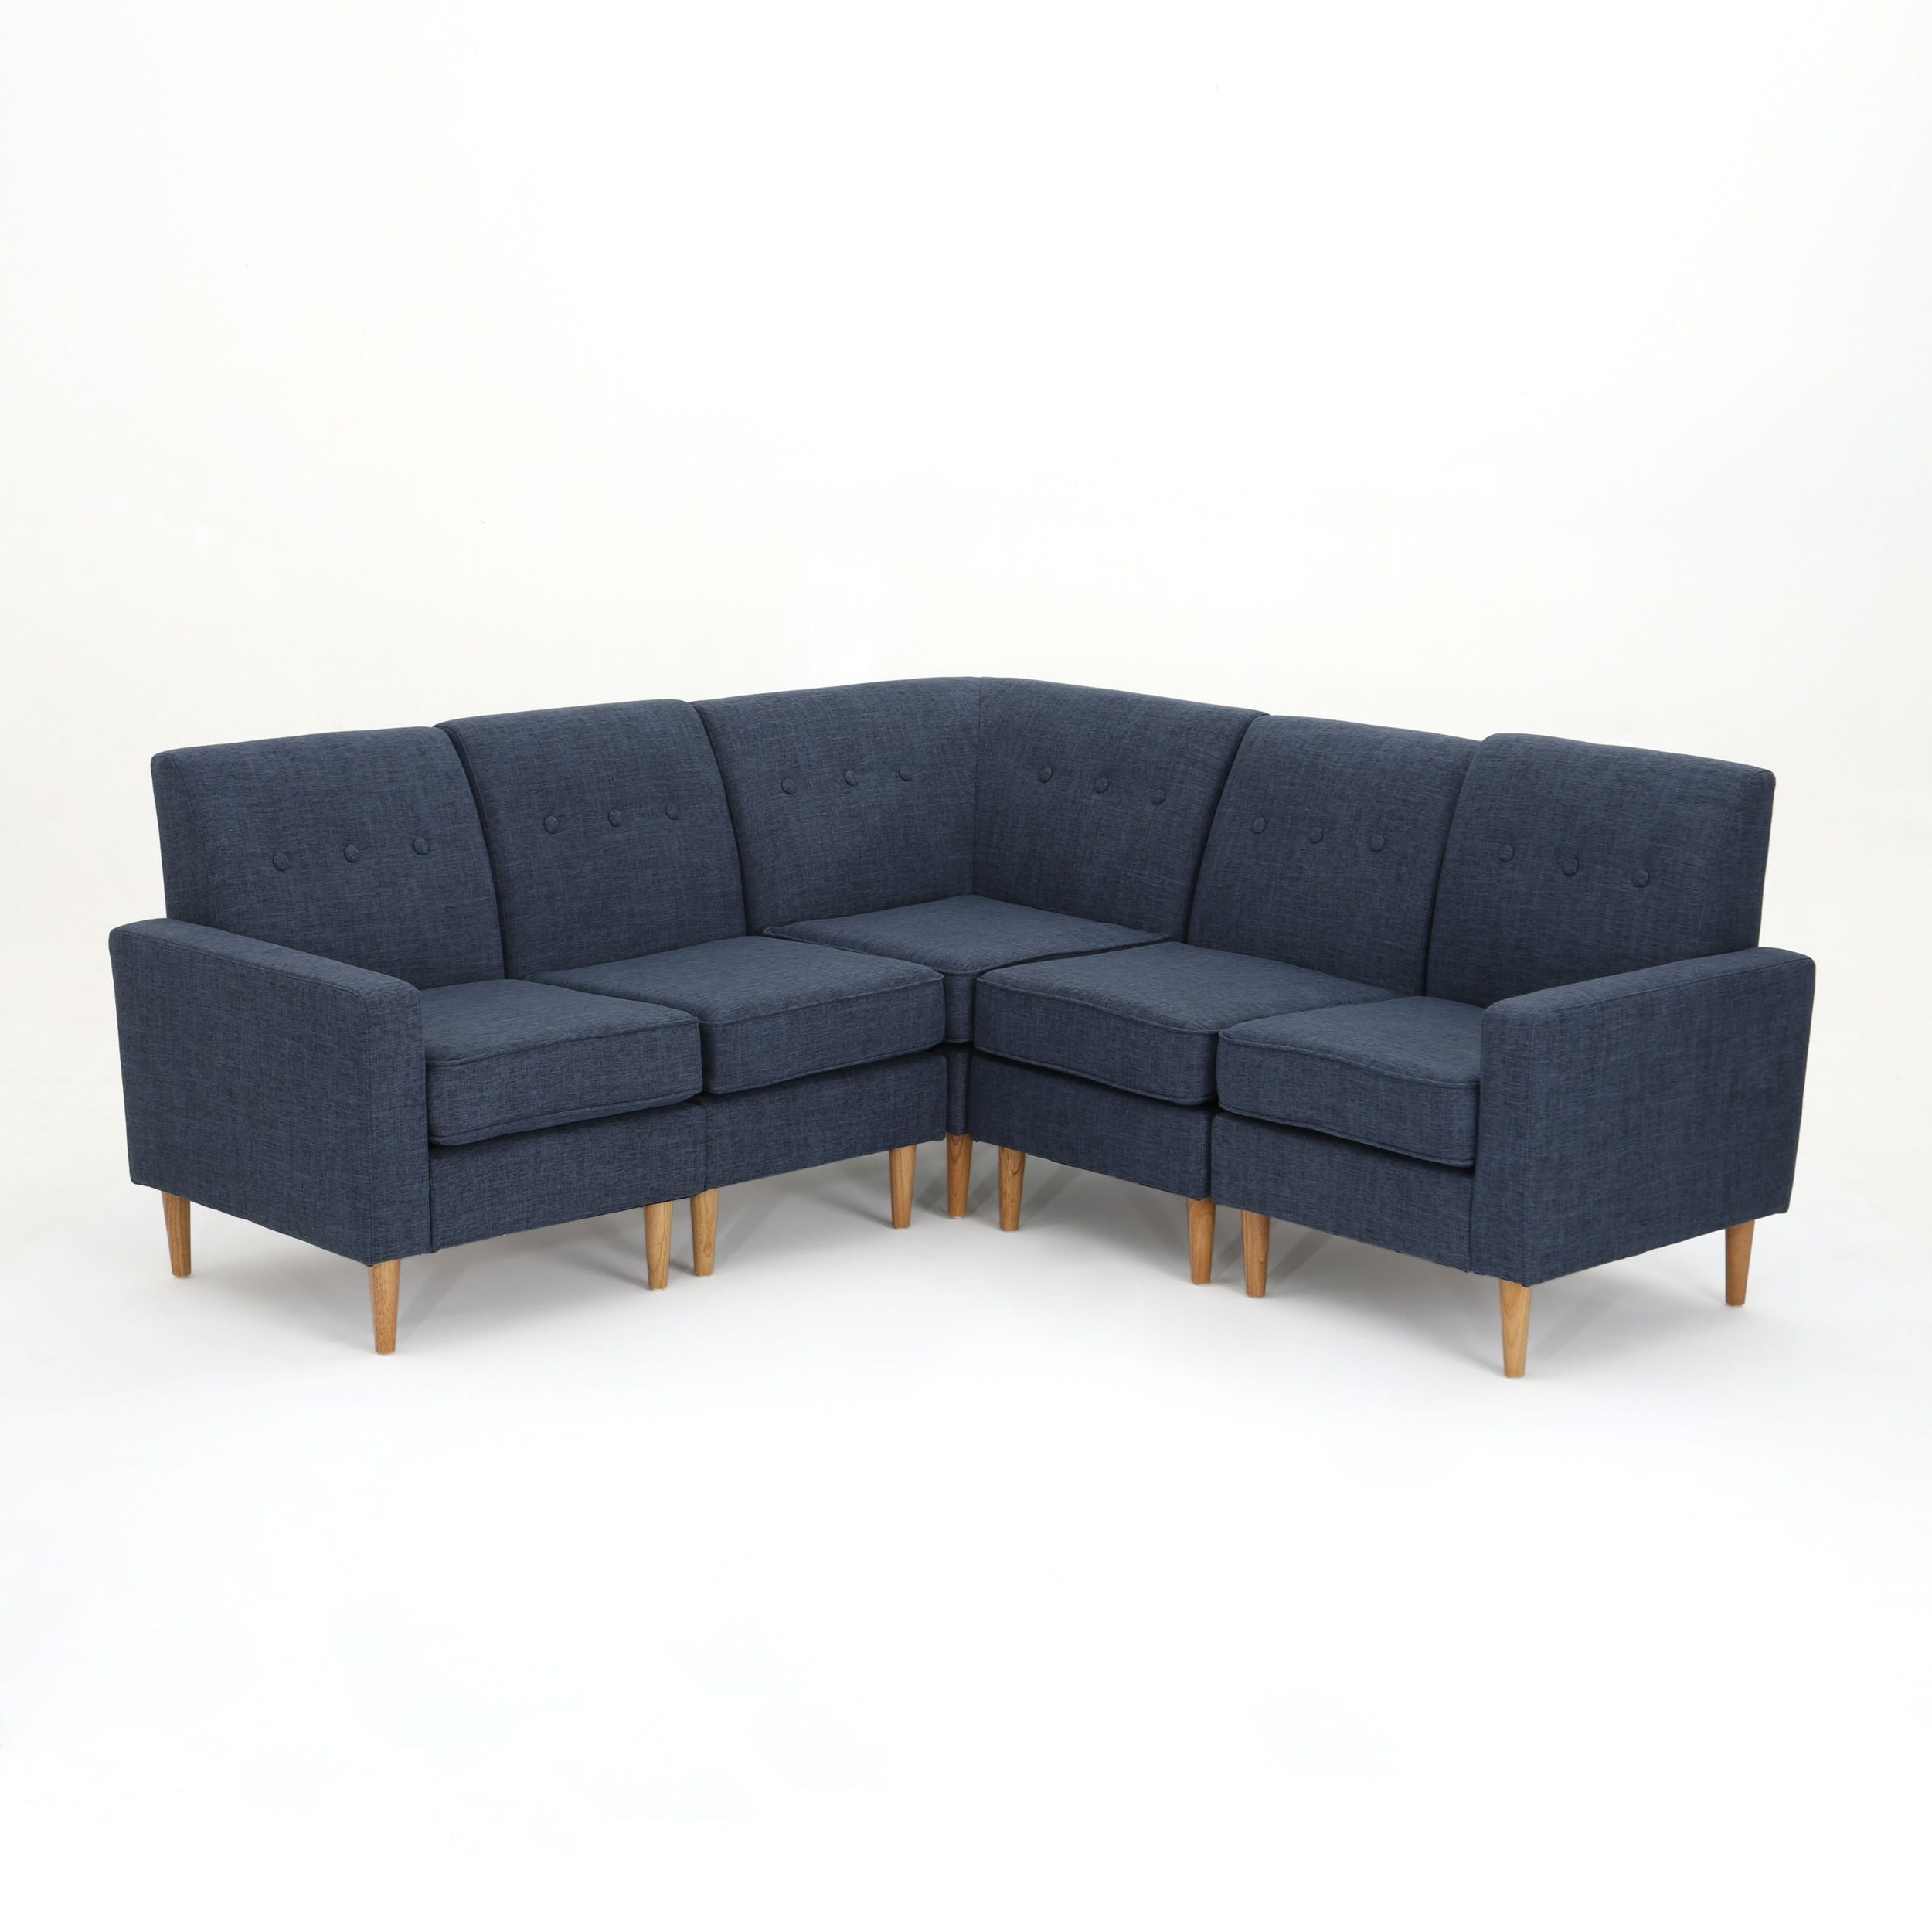 Widely Used Our Best Living Room Furniture Deals (View 23 of 25)